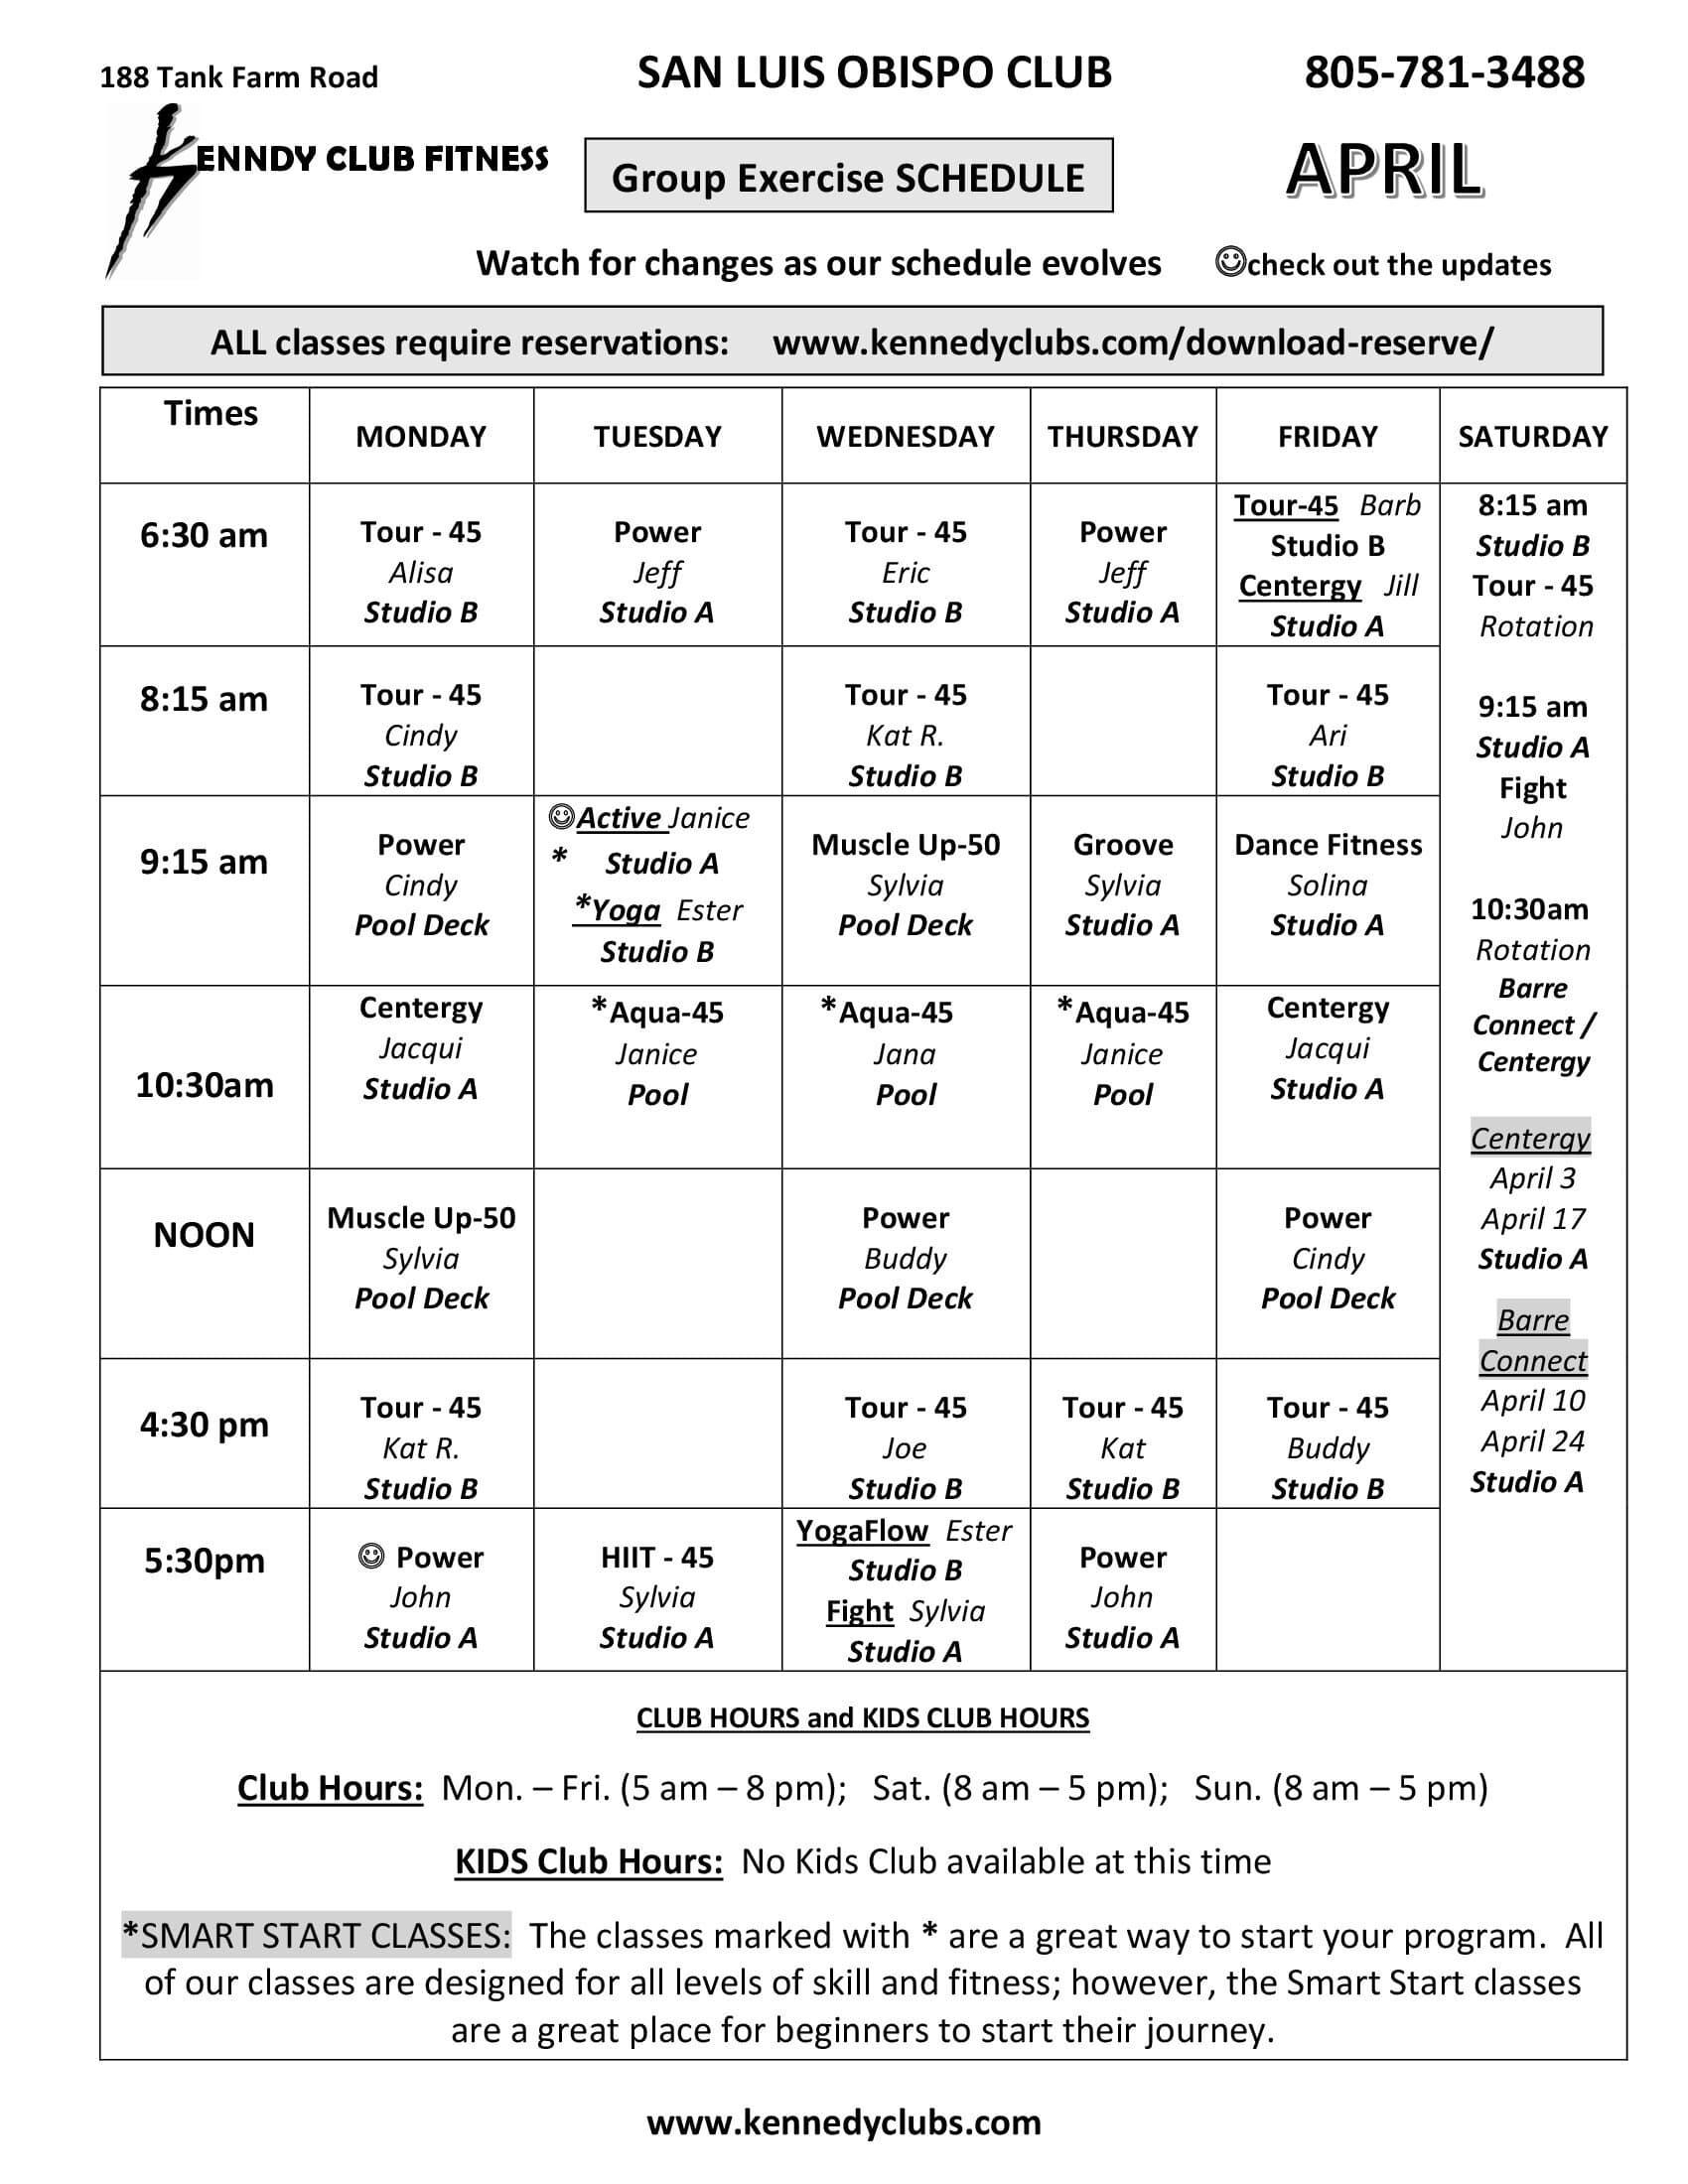 Kennedy Club Fitness San Luis Obispo Group Exercise Schedule 04 13 2021